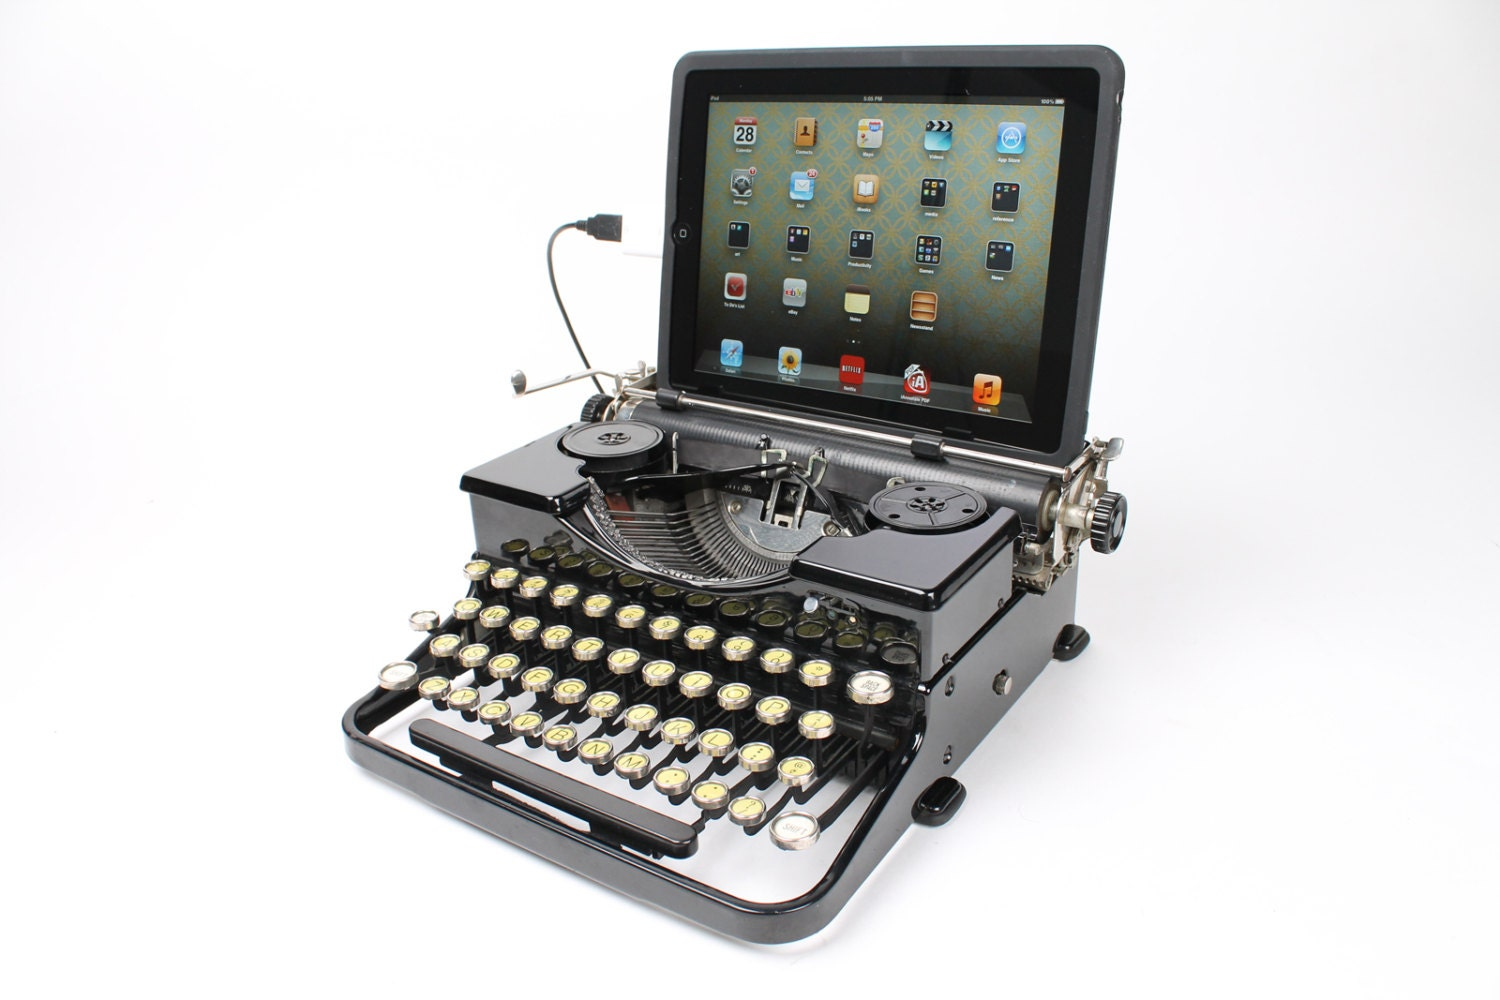 USB Typewriter Computer Keyboard Royal Portable from 1933 | 1500 x 1000 jpeg 190kB